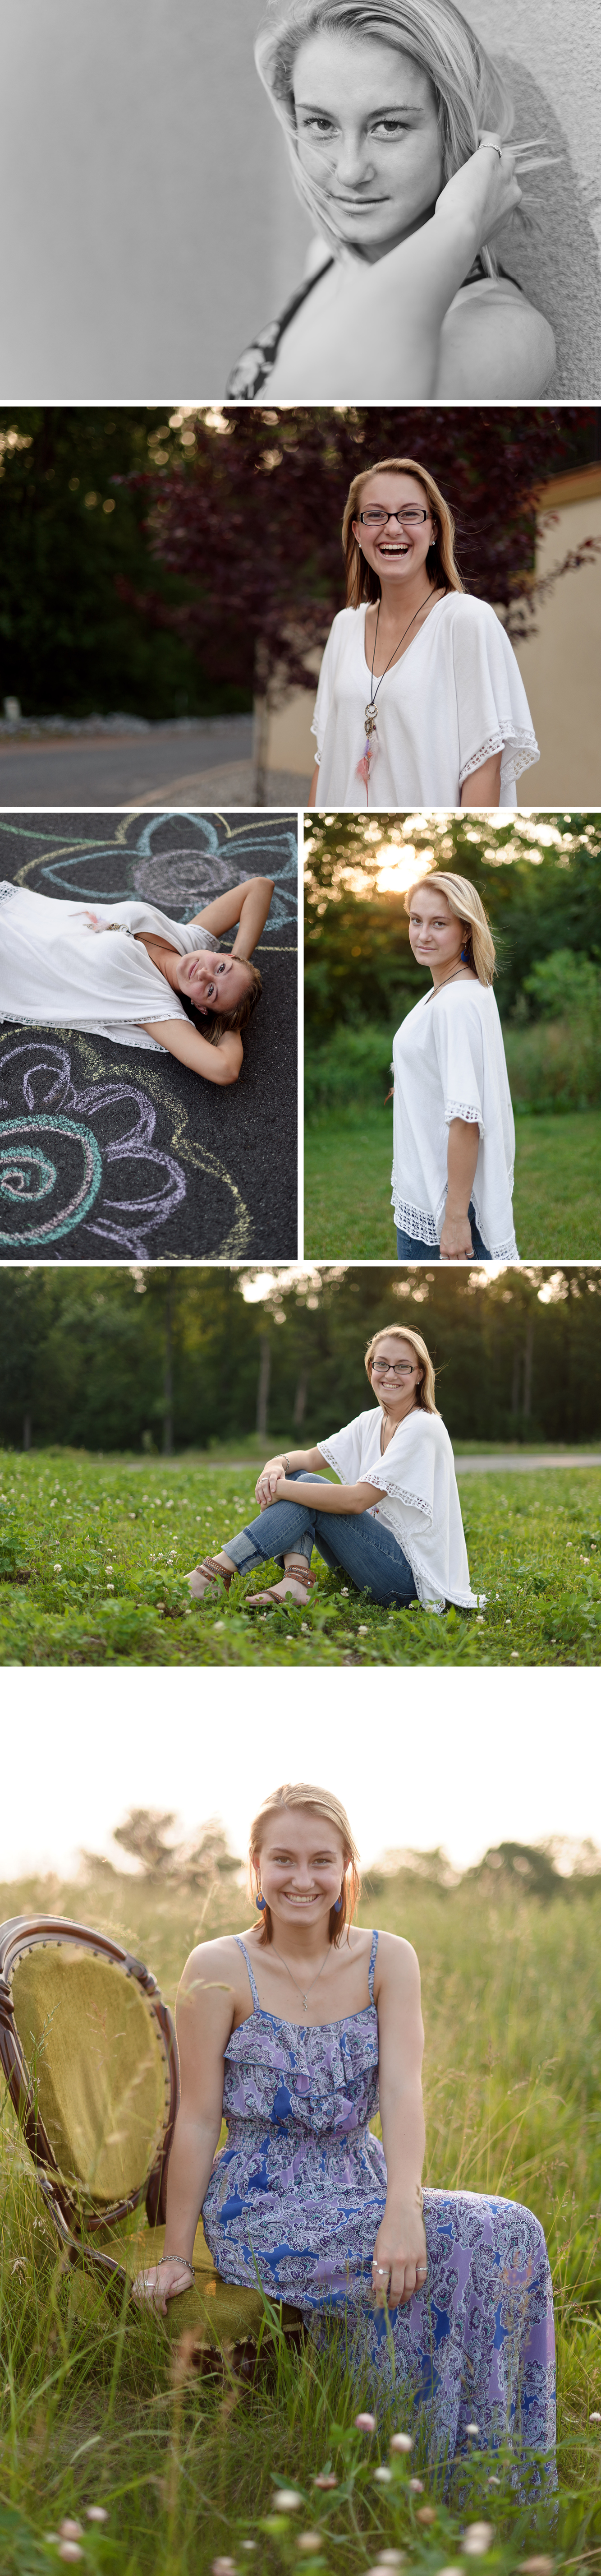 Lancaster PA senior photography by Jeremy Bischoff Photography